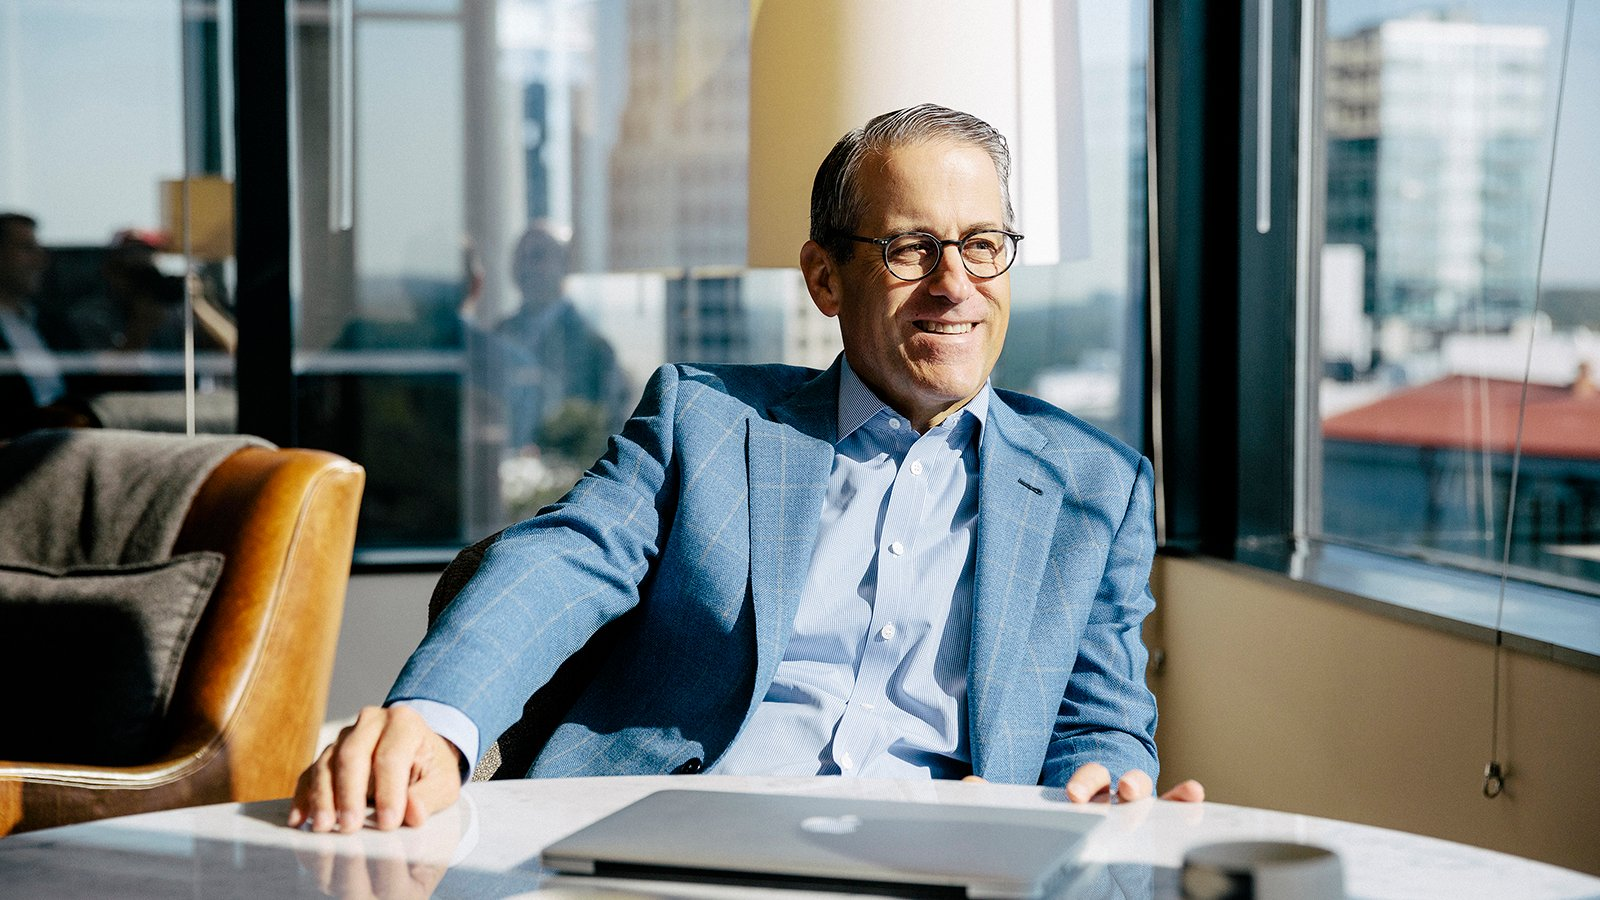 Mark DeMoss has guided public relations for many prominent Christian organizations in recent decades from his Atlanta-based firm. Photo courtesy of DeMoss